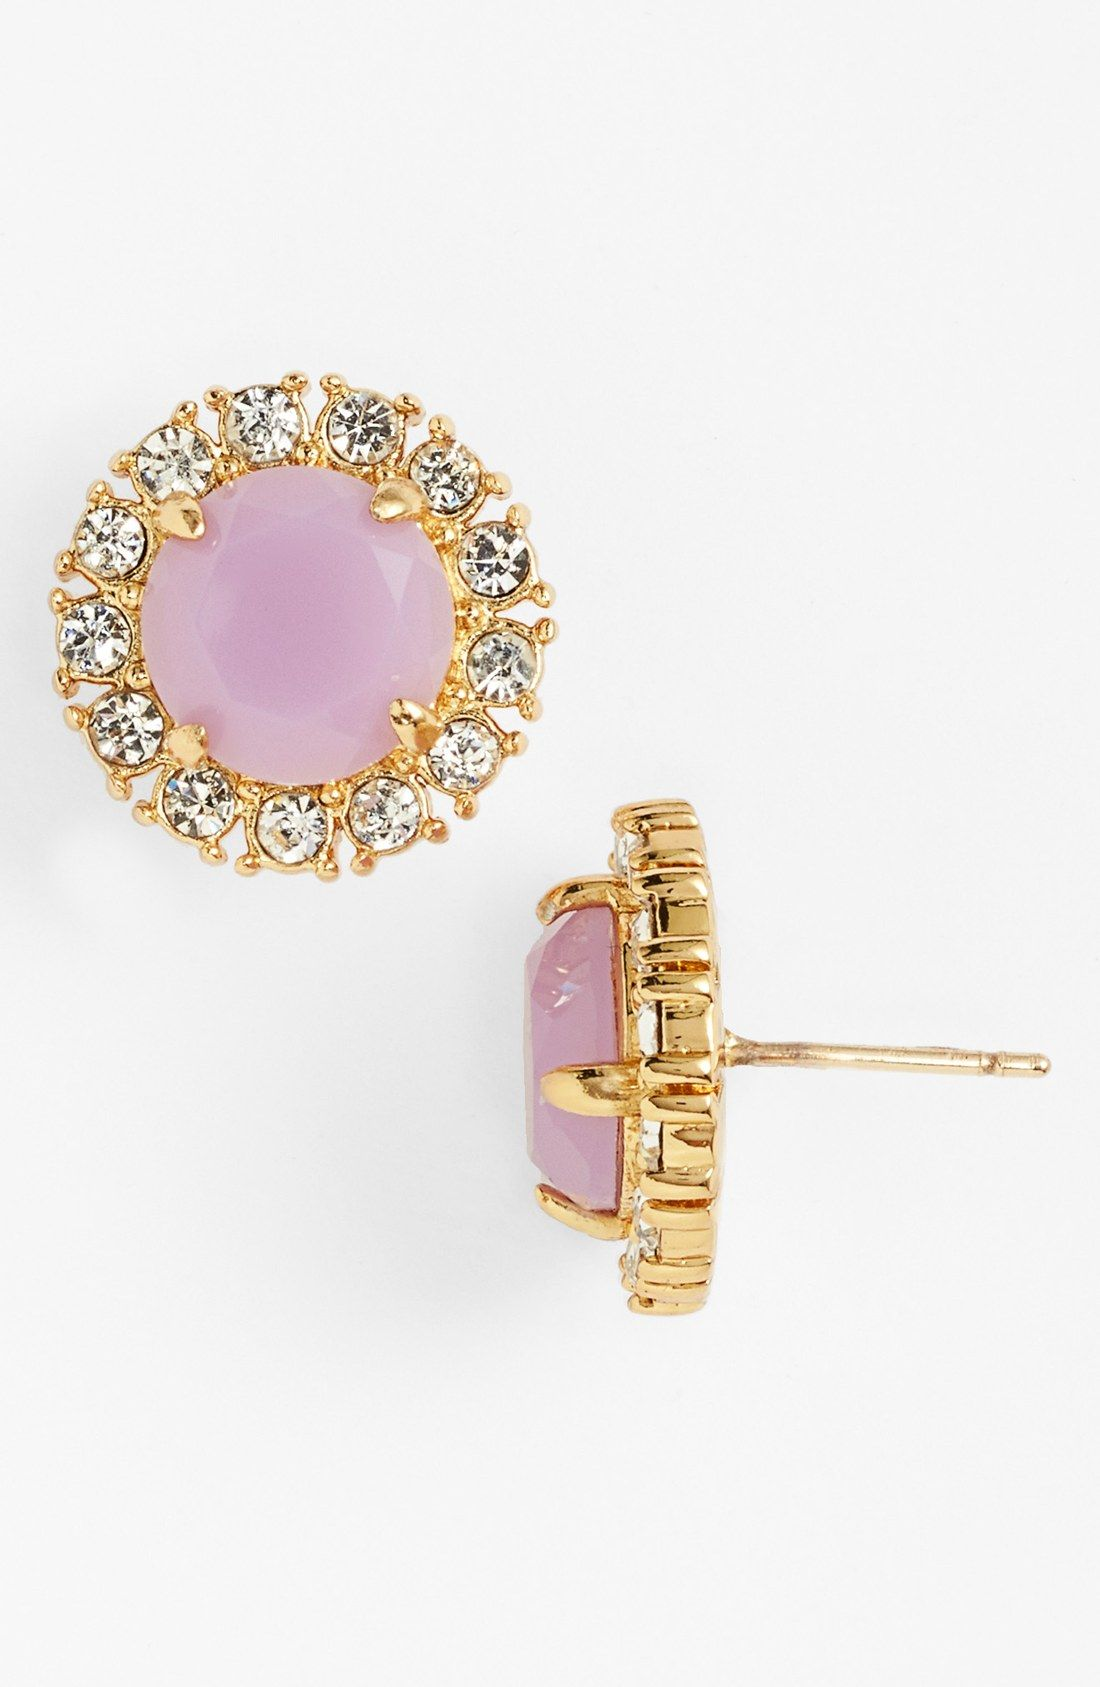 cfdea8f49eb94 Pretty pastel pink Kate Spade stud earrings for spring.   Want ...